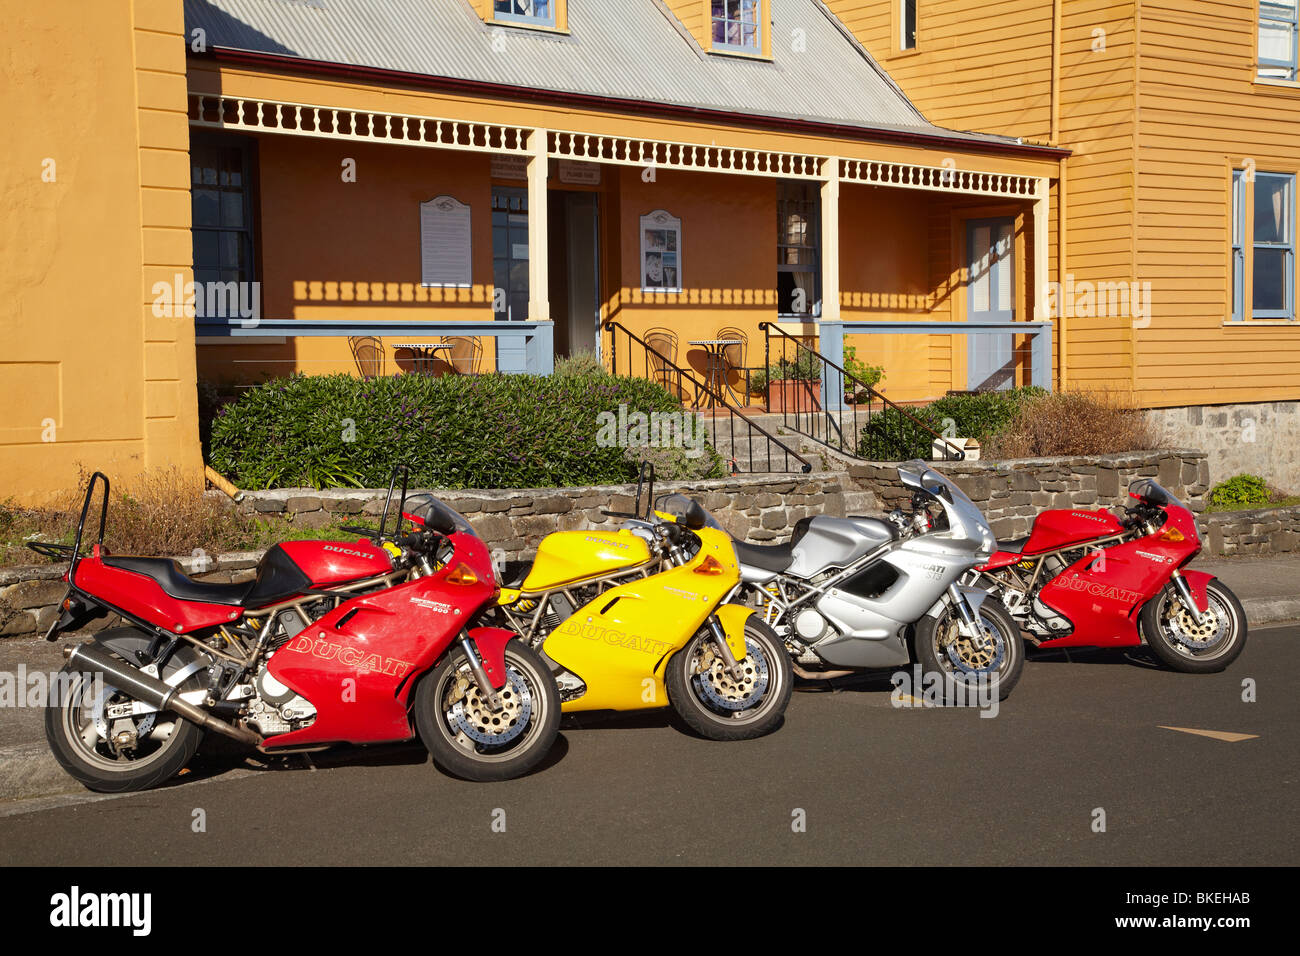 Four Ducati Motorbikes, and The Bay View Guesthouse, Alexander Terrace, Stanley, Northwest Tasmania, Australia - Stock Image